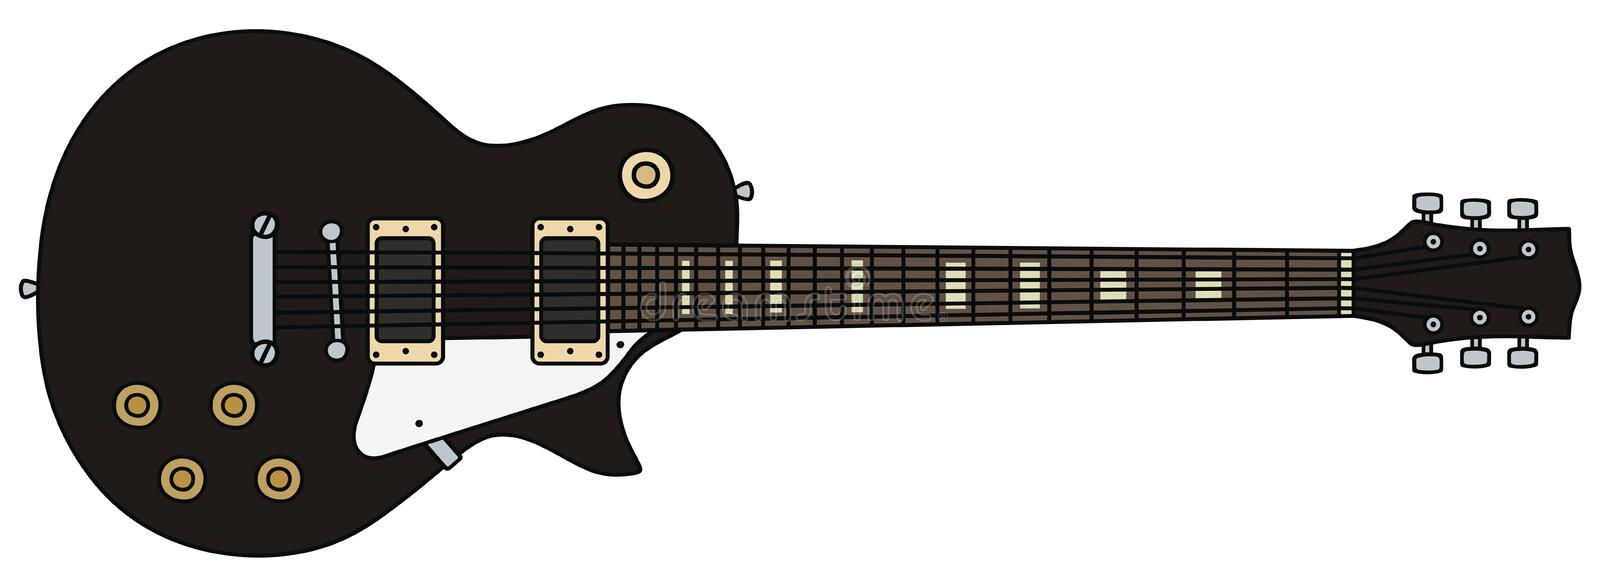 Guitare électrique illustration stock